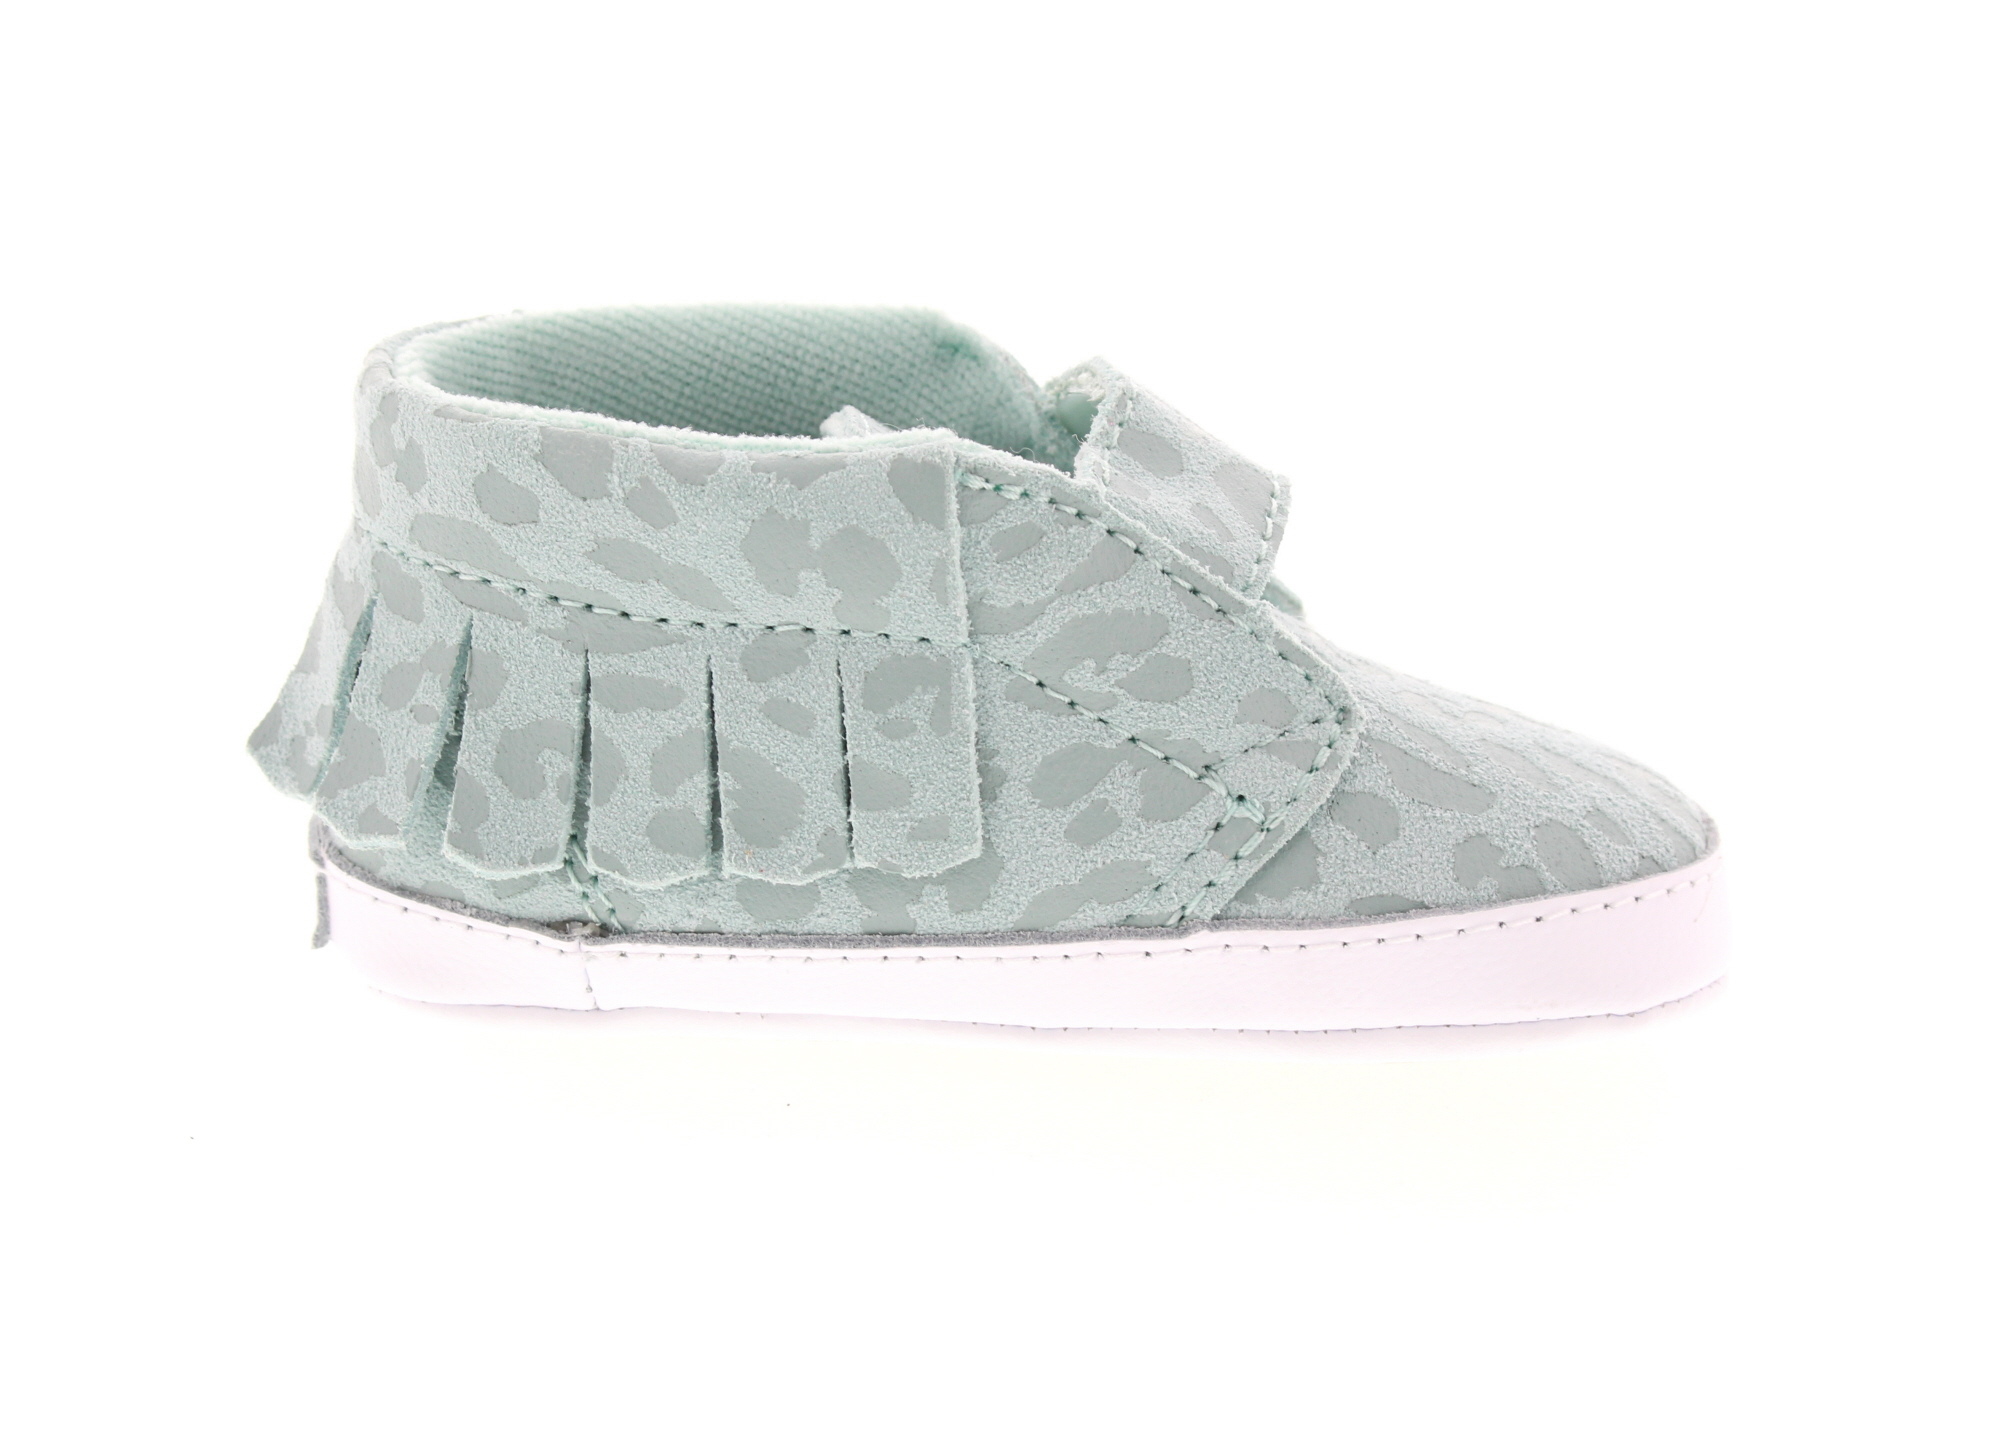 4e91e193139 Chukka V Moc Crib - (Leopard Suede) Harbor GreyBaby - Flying Point Surf